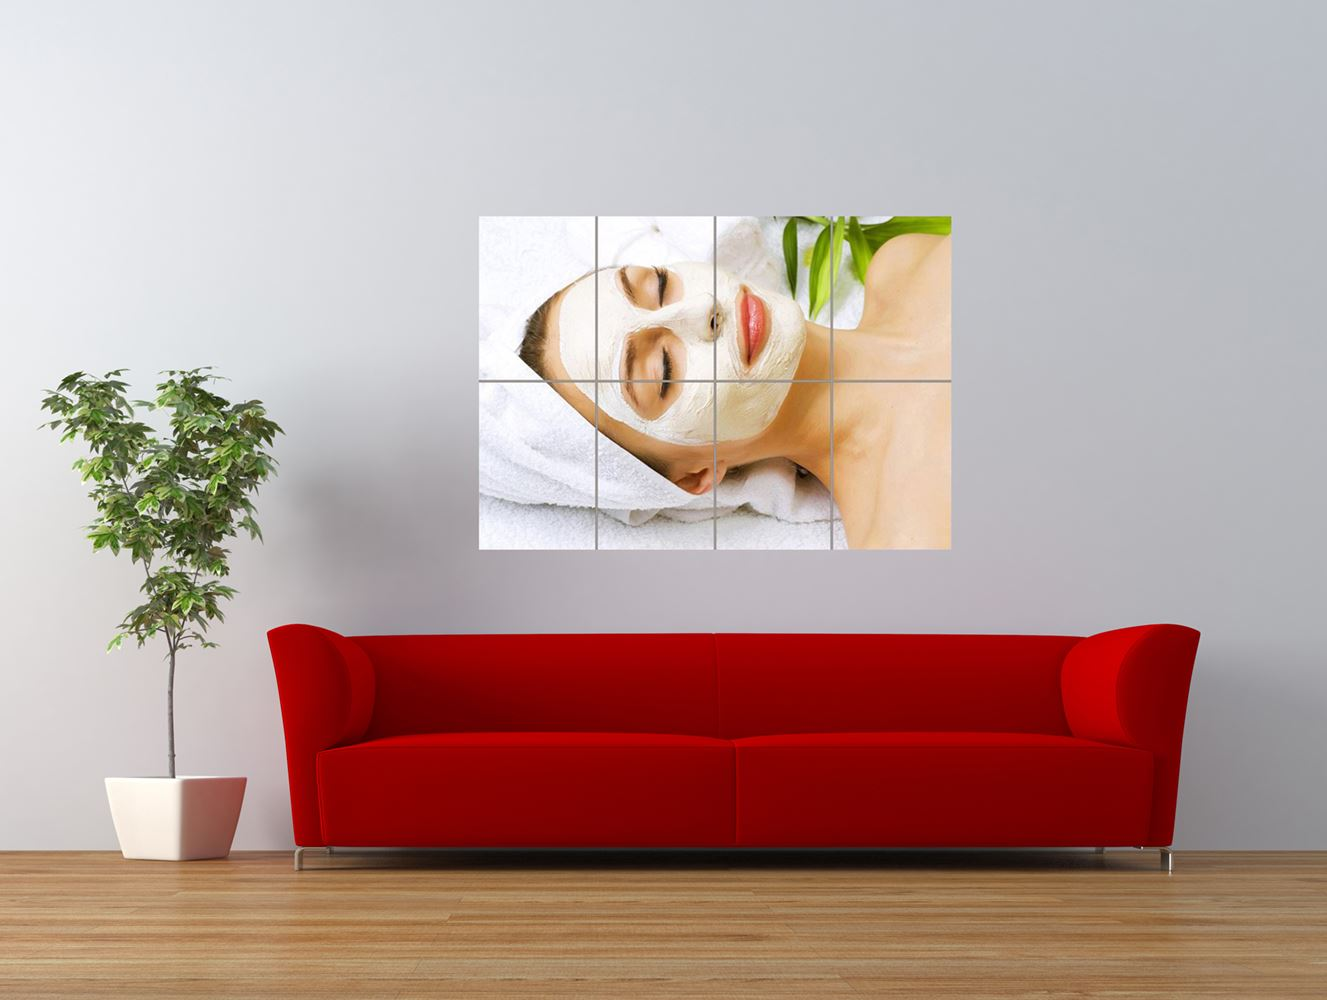 salon spa health beauty facial mask giant art print panel poster nor0332 ebay. Black Bedroom Furniture Sets. Home Design Ideas